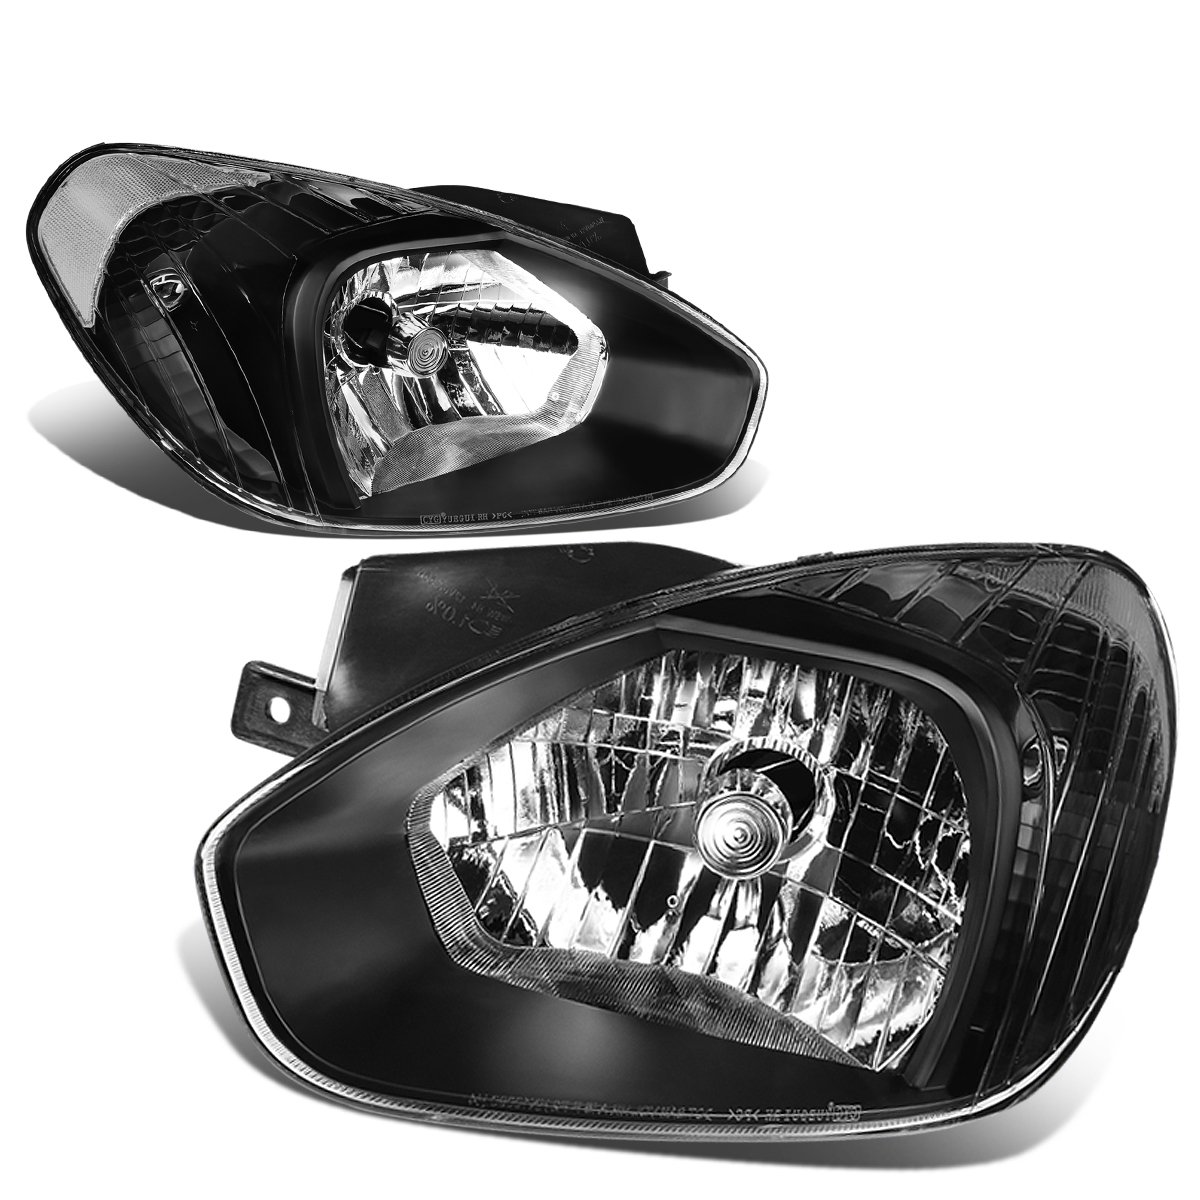 DNA Motoring HL-OH-048-BK-CL1 Pair of Headlight [for 07-11 Accent]